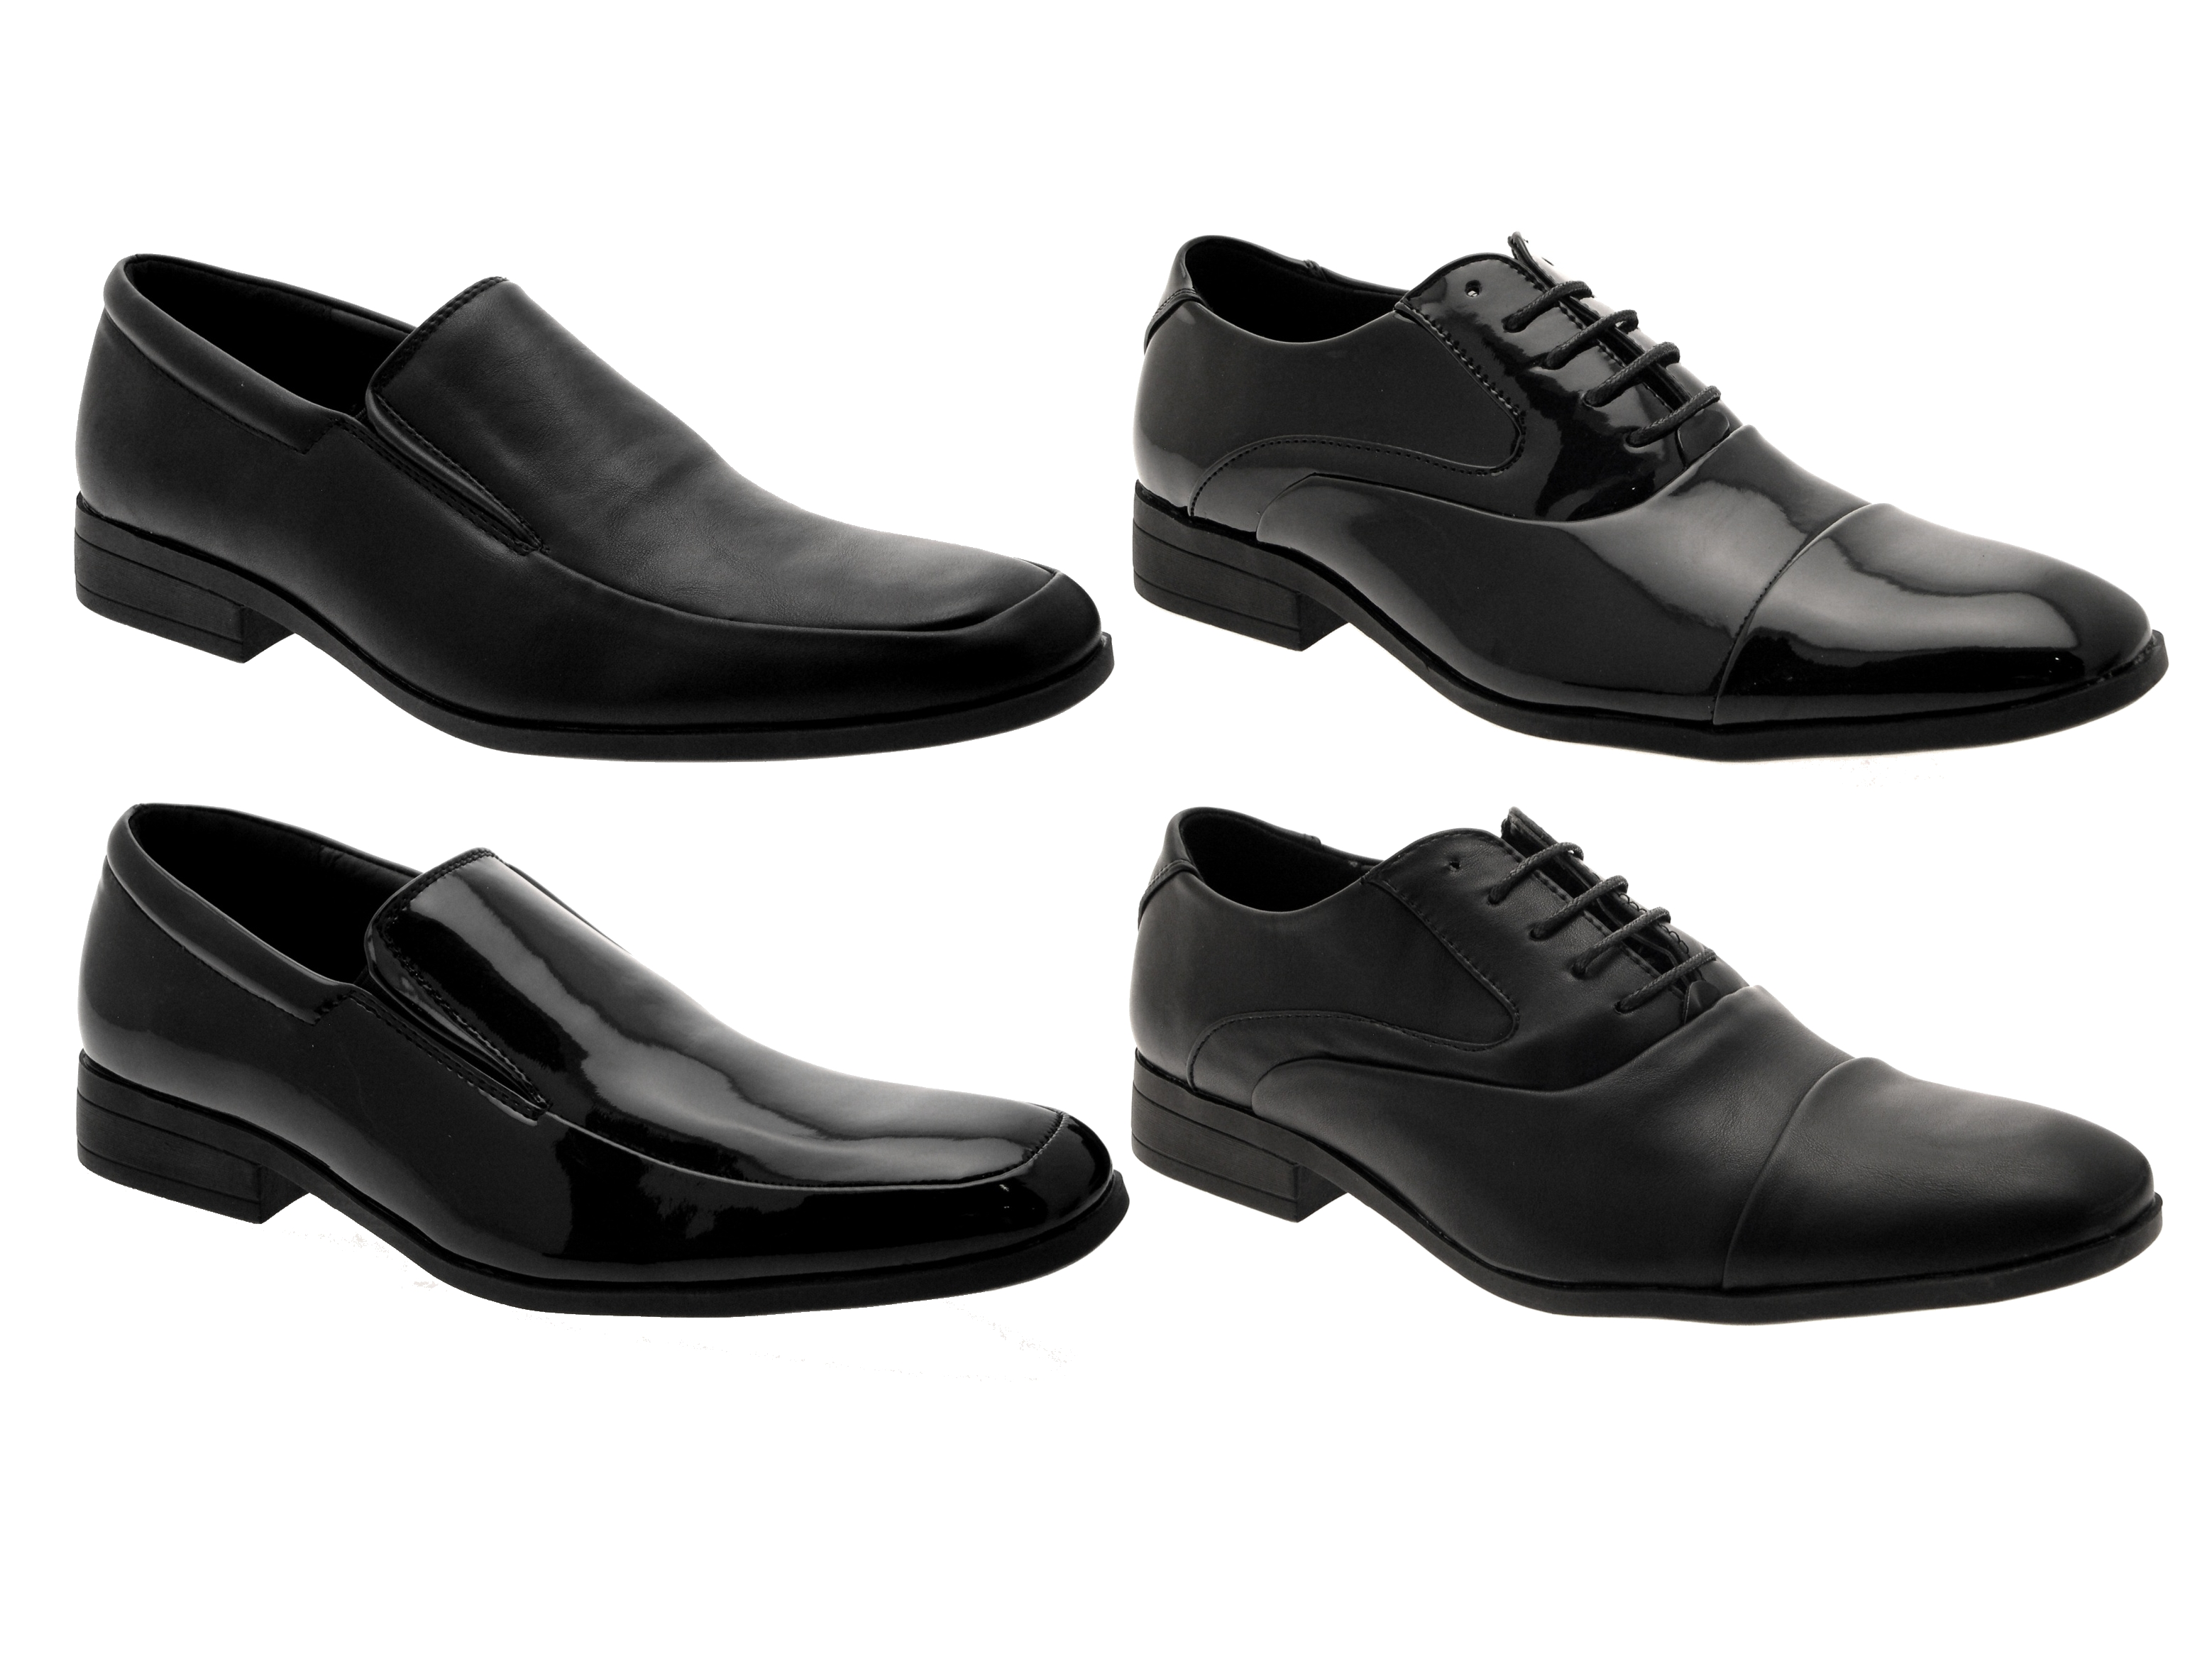 Mens Smart Oxford Lace Ups Loafers Slip On